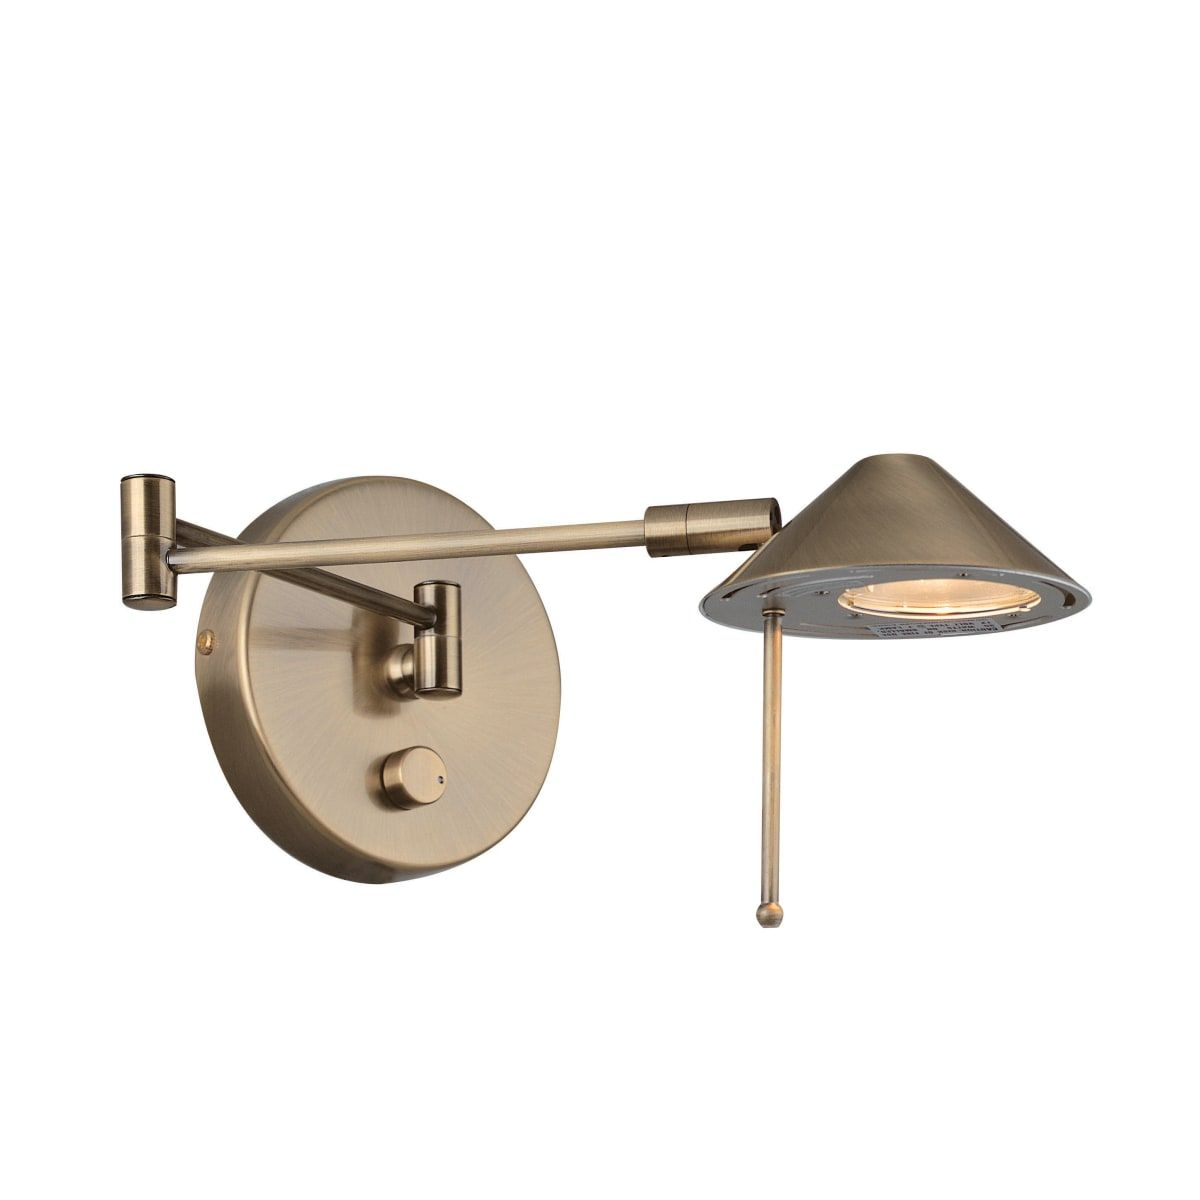 Lite Source Ls 16350 Swing Arm Wall Lamps Wall Lamp Swing Arm Wall Sconce